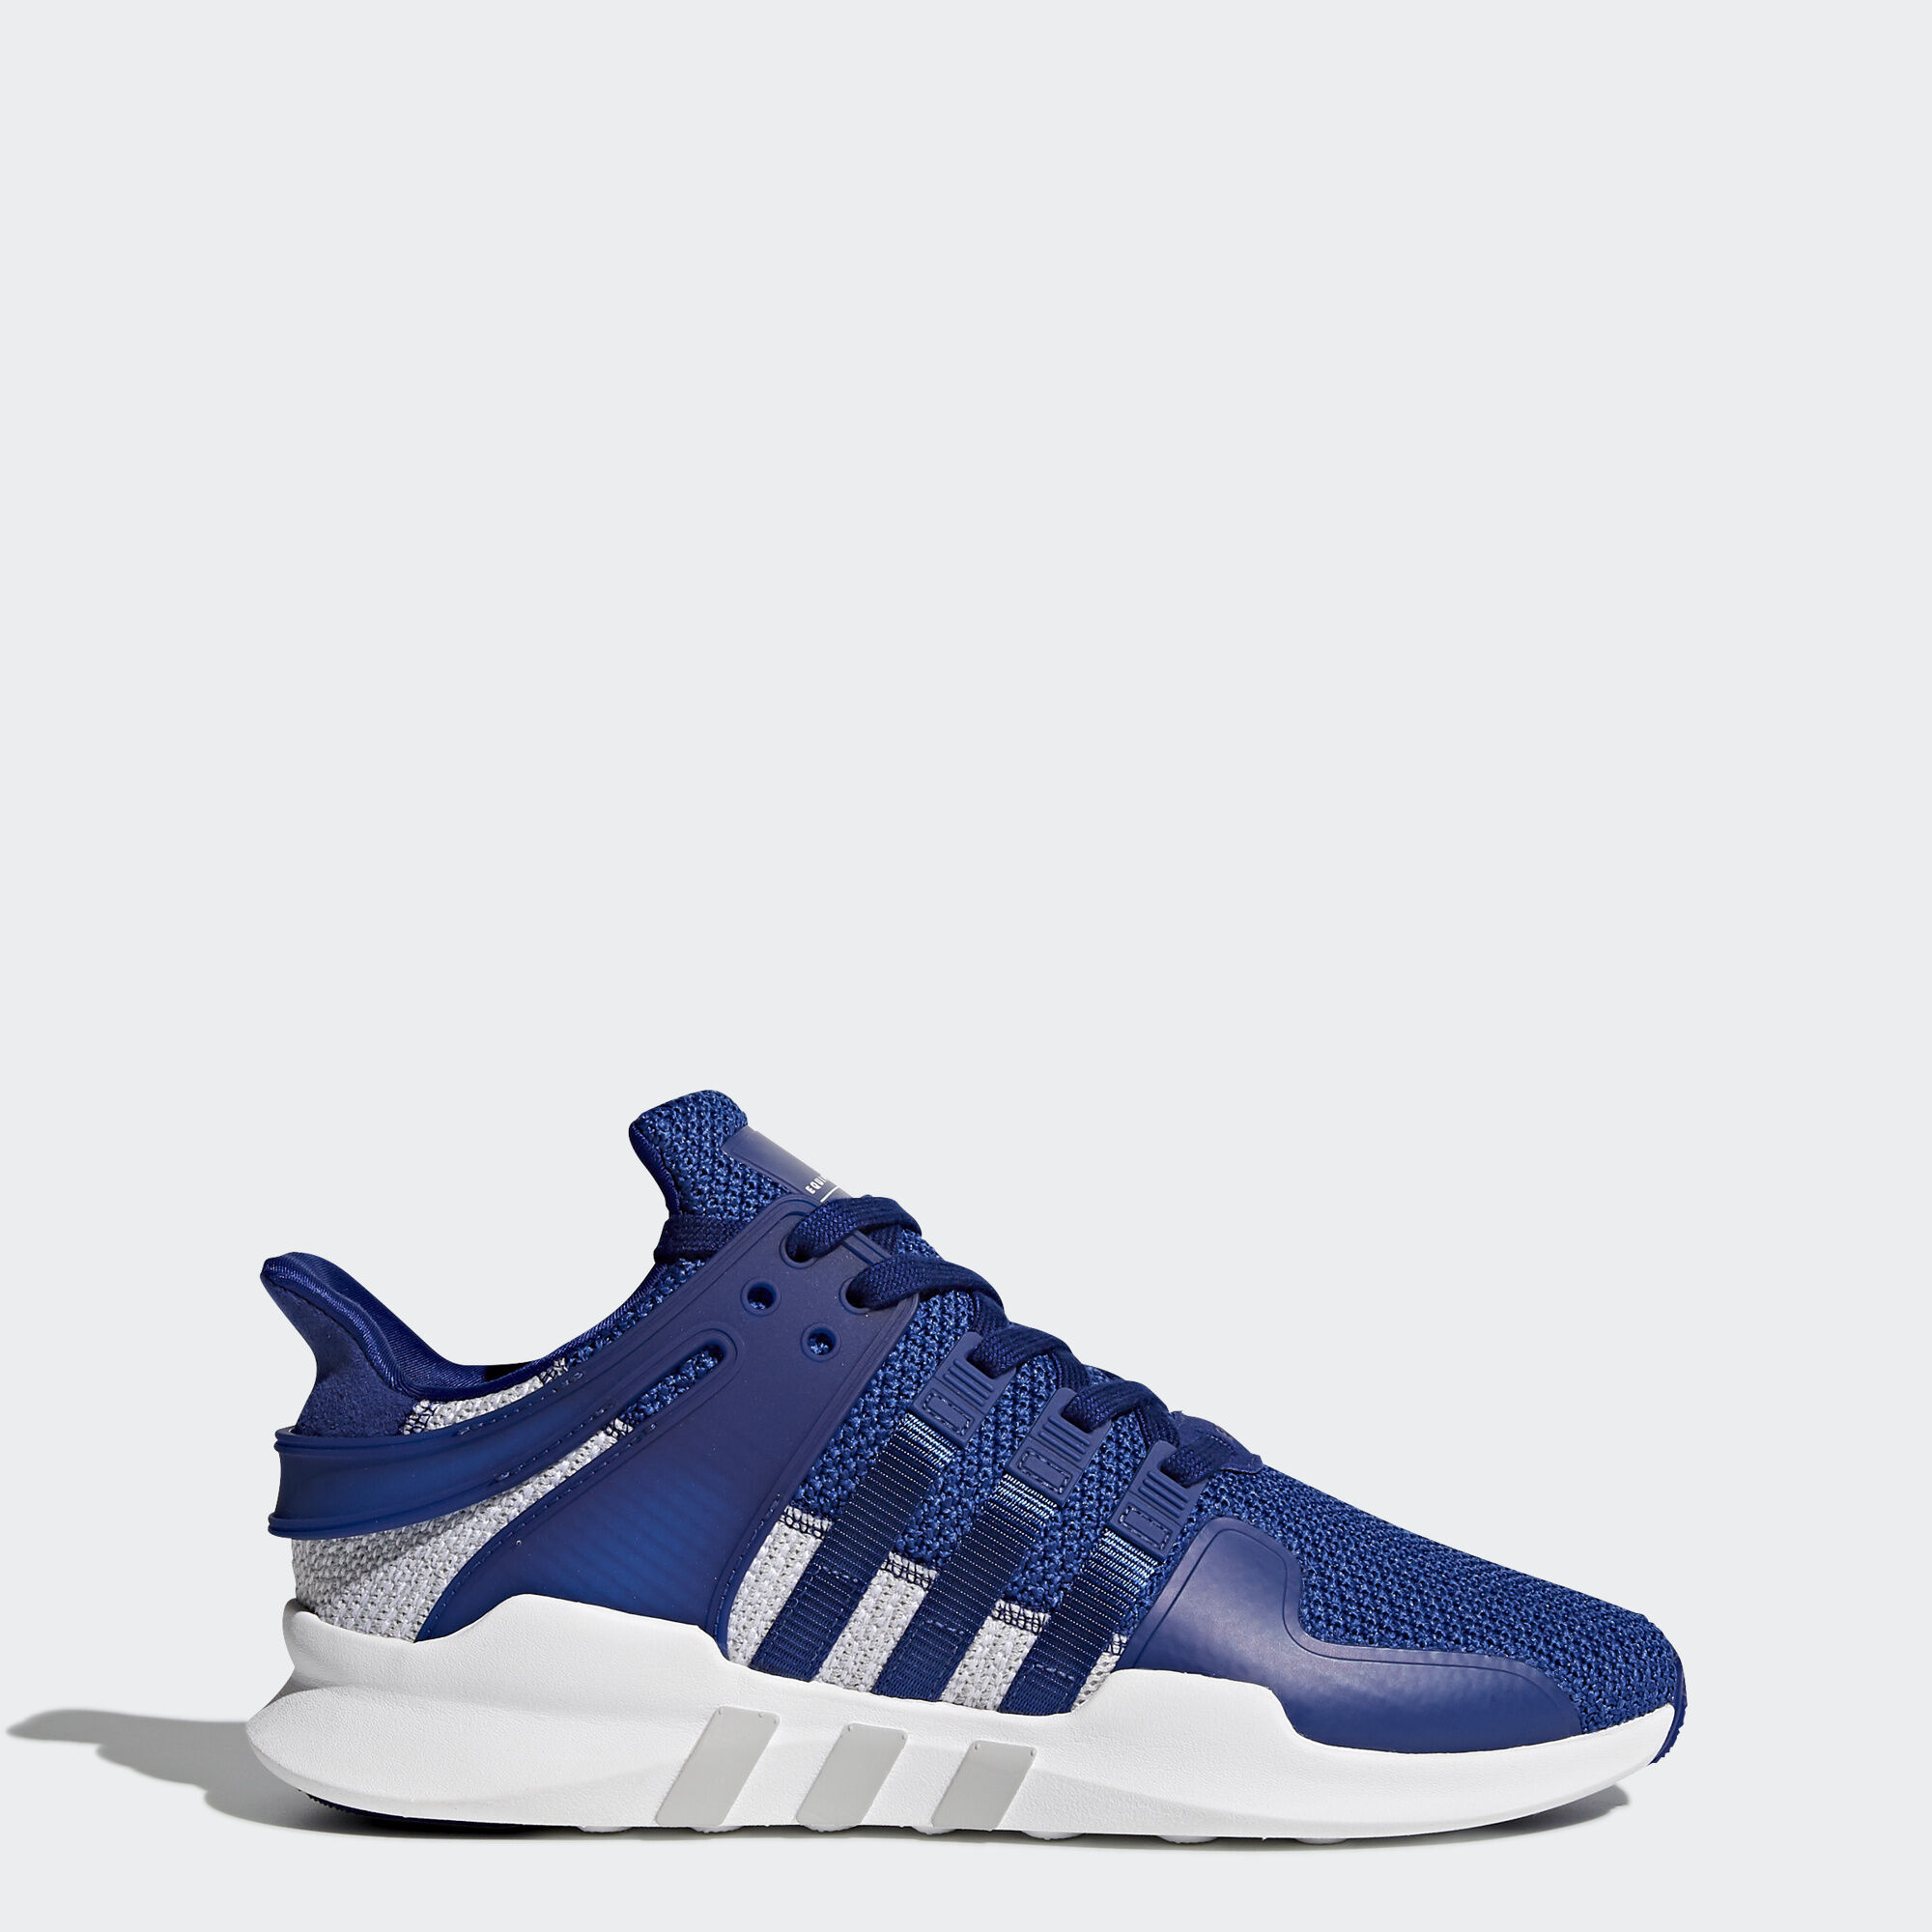 Adidas EQT Support ADV Shoes Mystery Ink Mystery Ink Footwear White BY9590